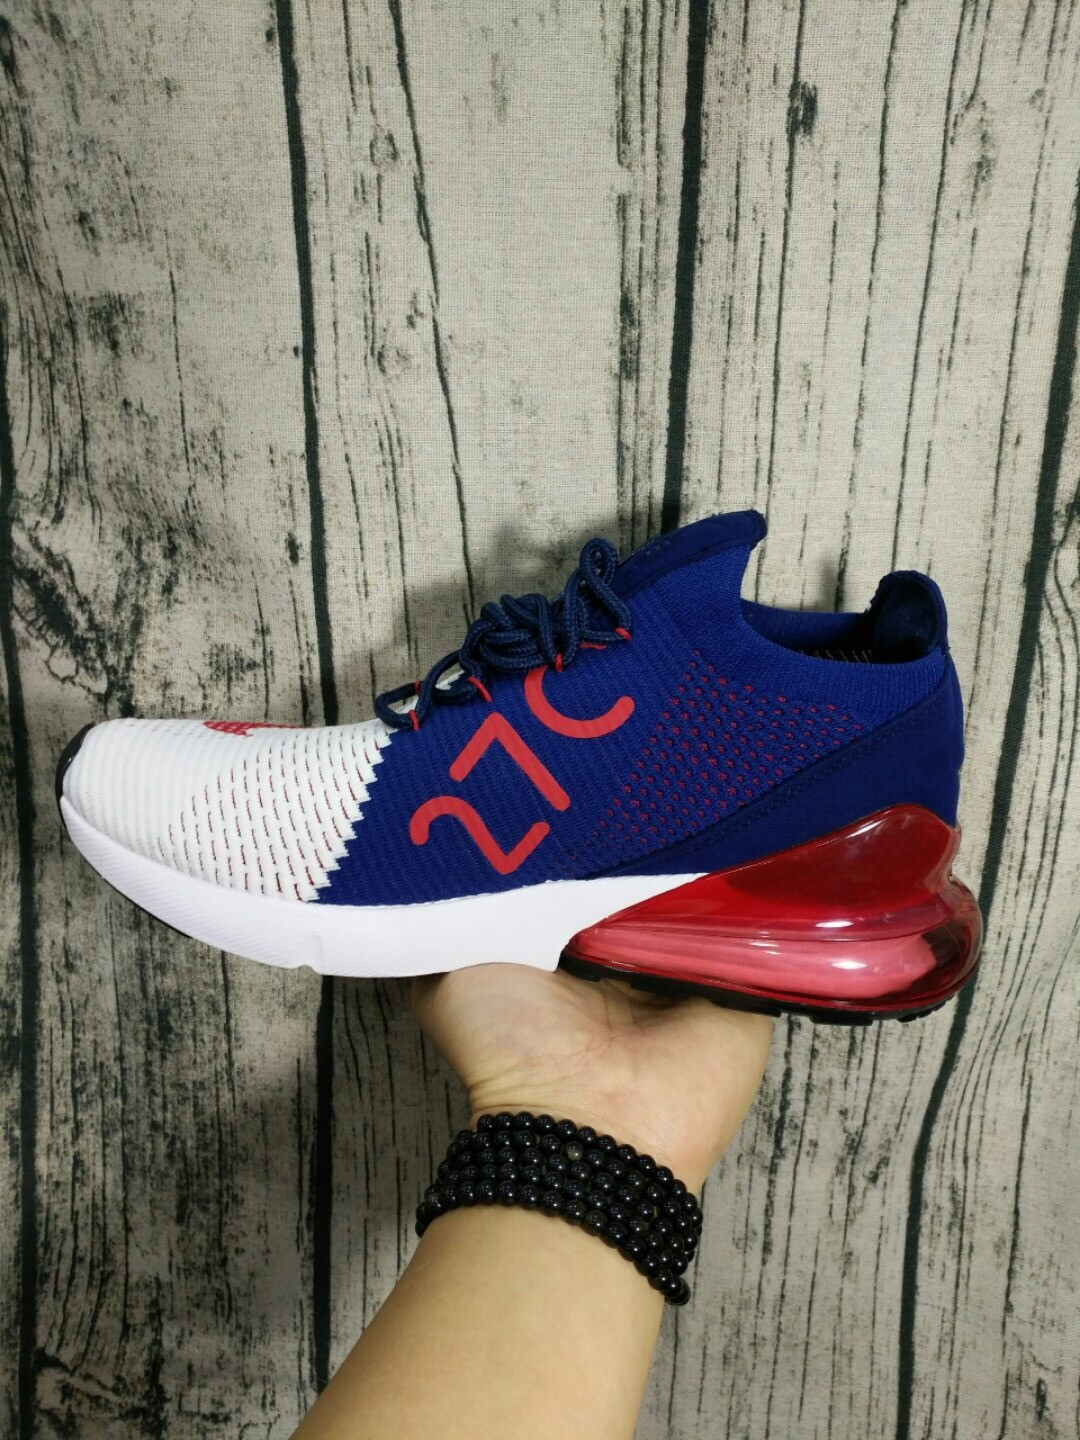 buy online a4bff 0cc7b High Quality Nike Air Max 27C Weave Red&White&Blue Shoes